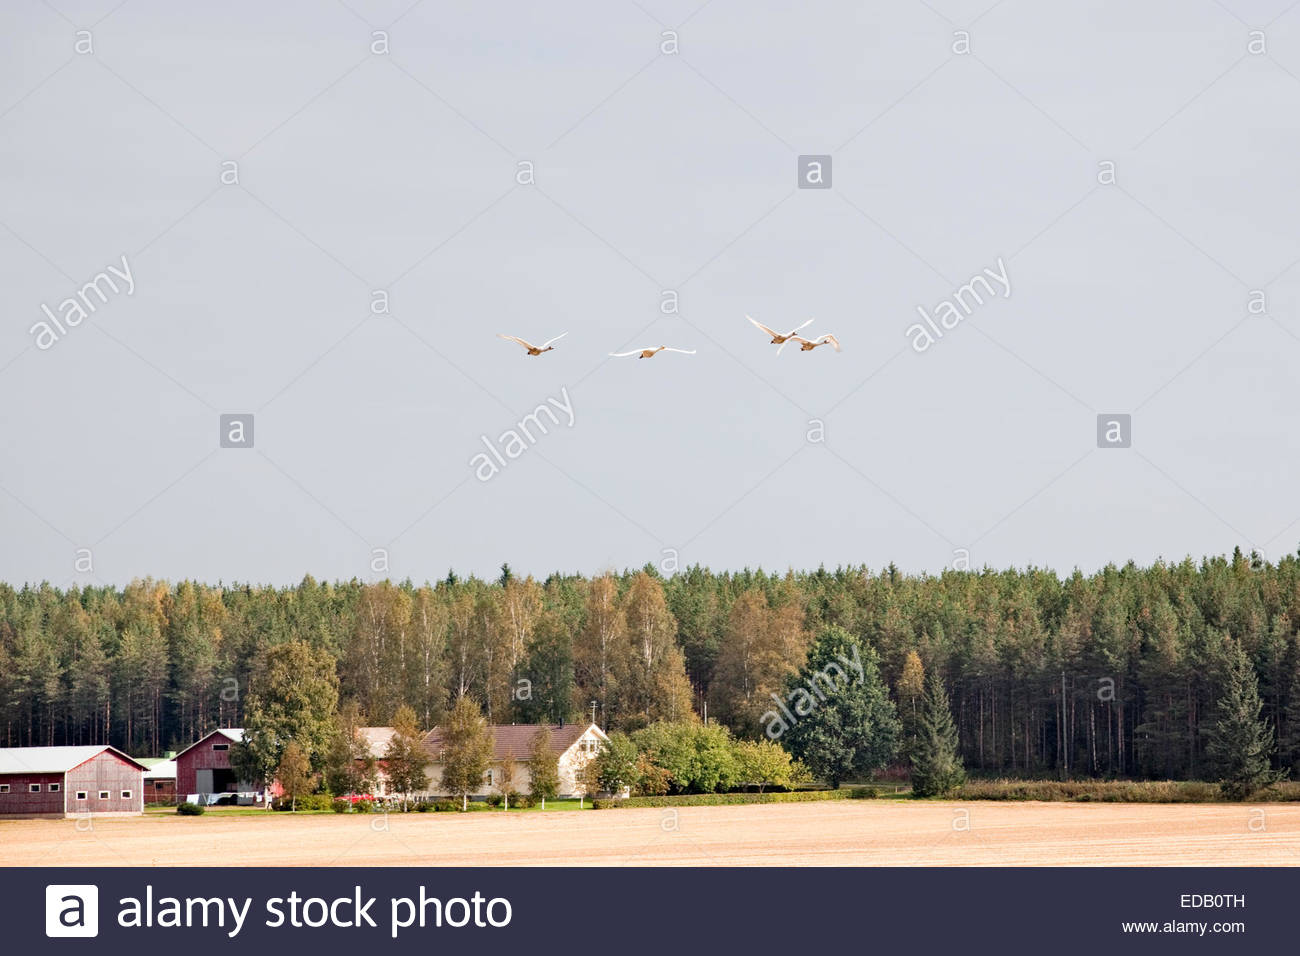 Whooper swans flying over a farm in Finland - Stock Image